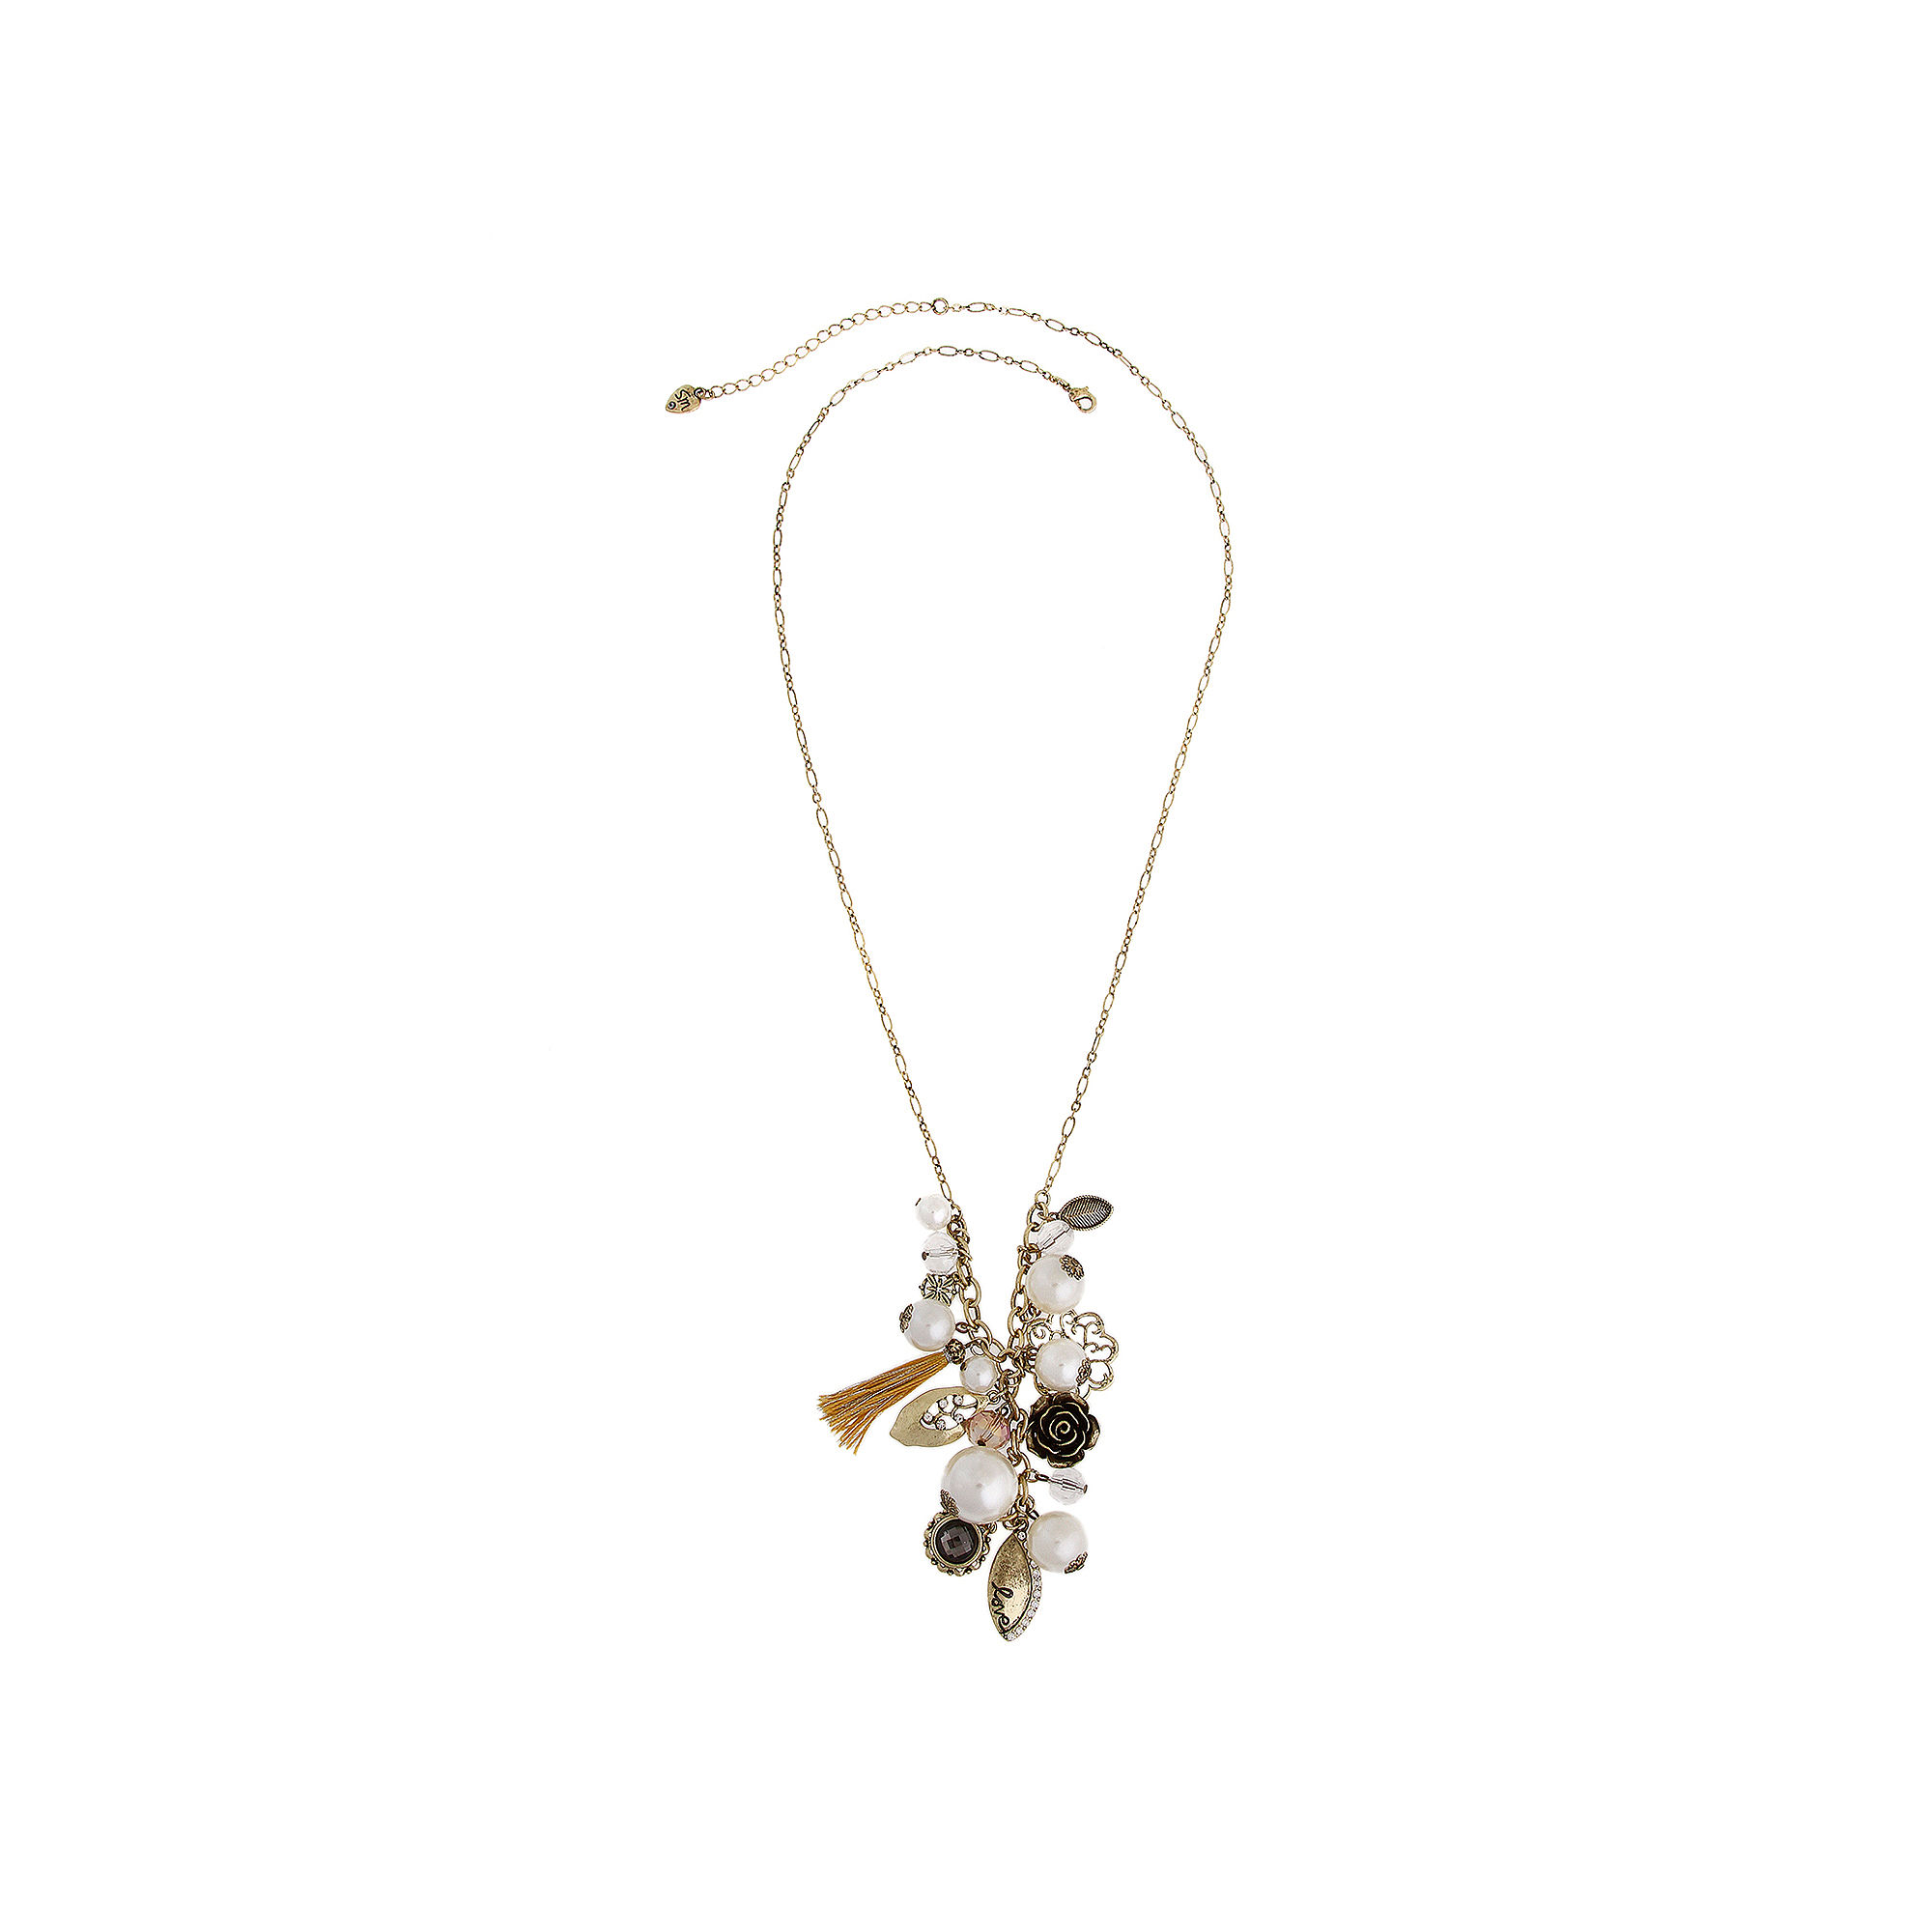 Messages from the Heart by Sandra Magsamen Gold-Tone Charm Necklace